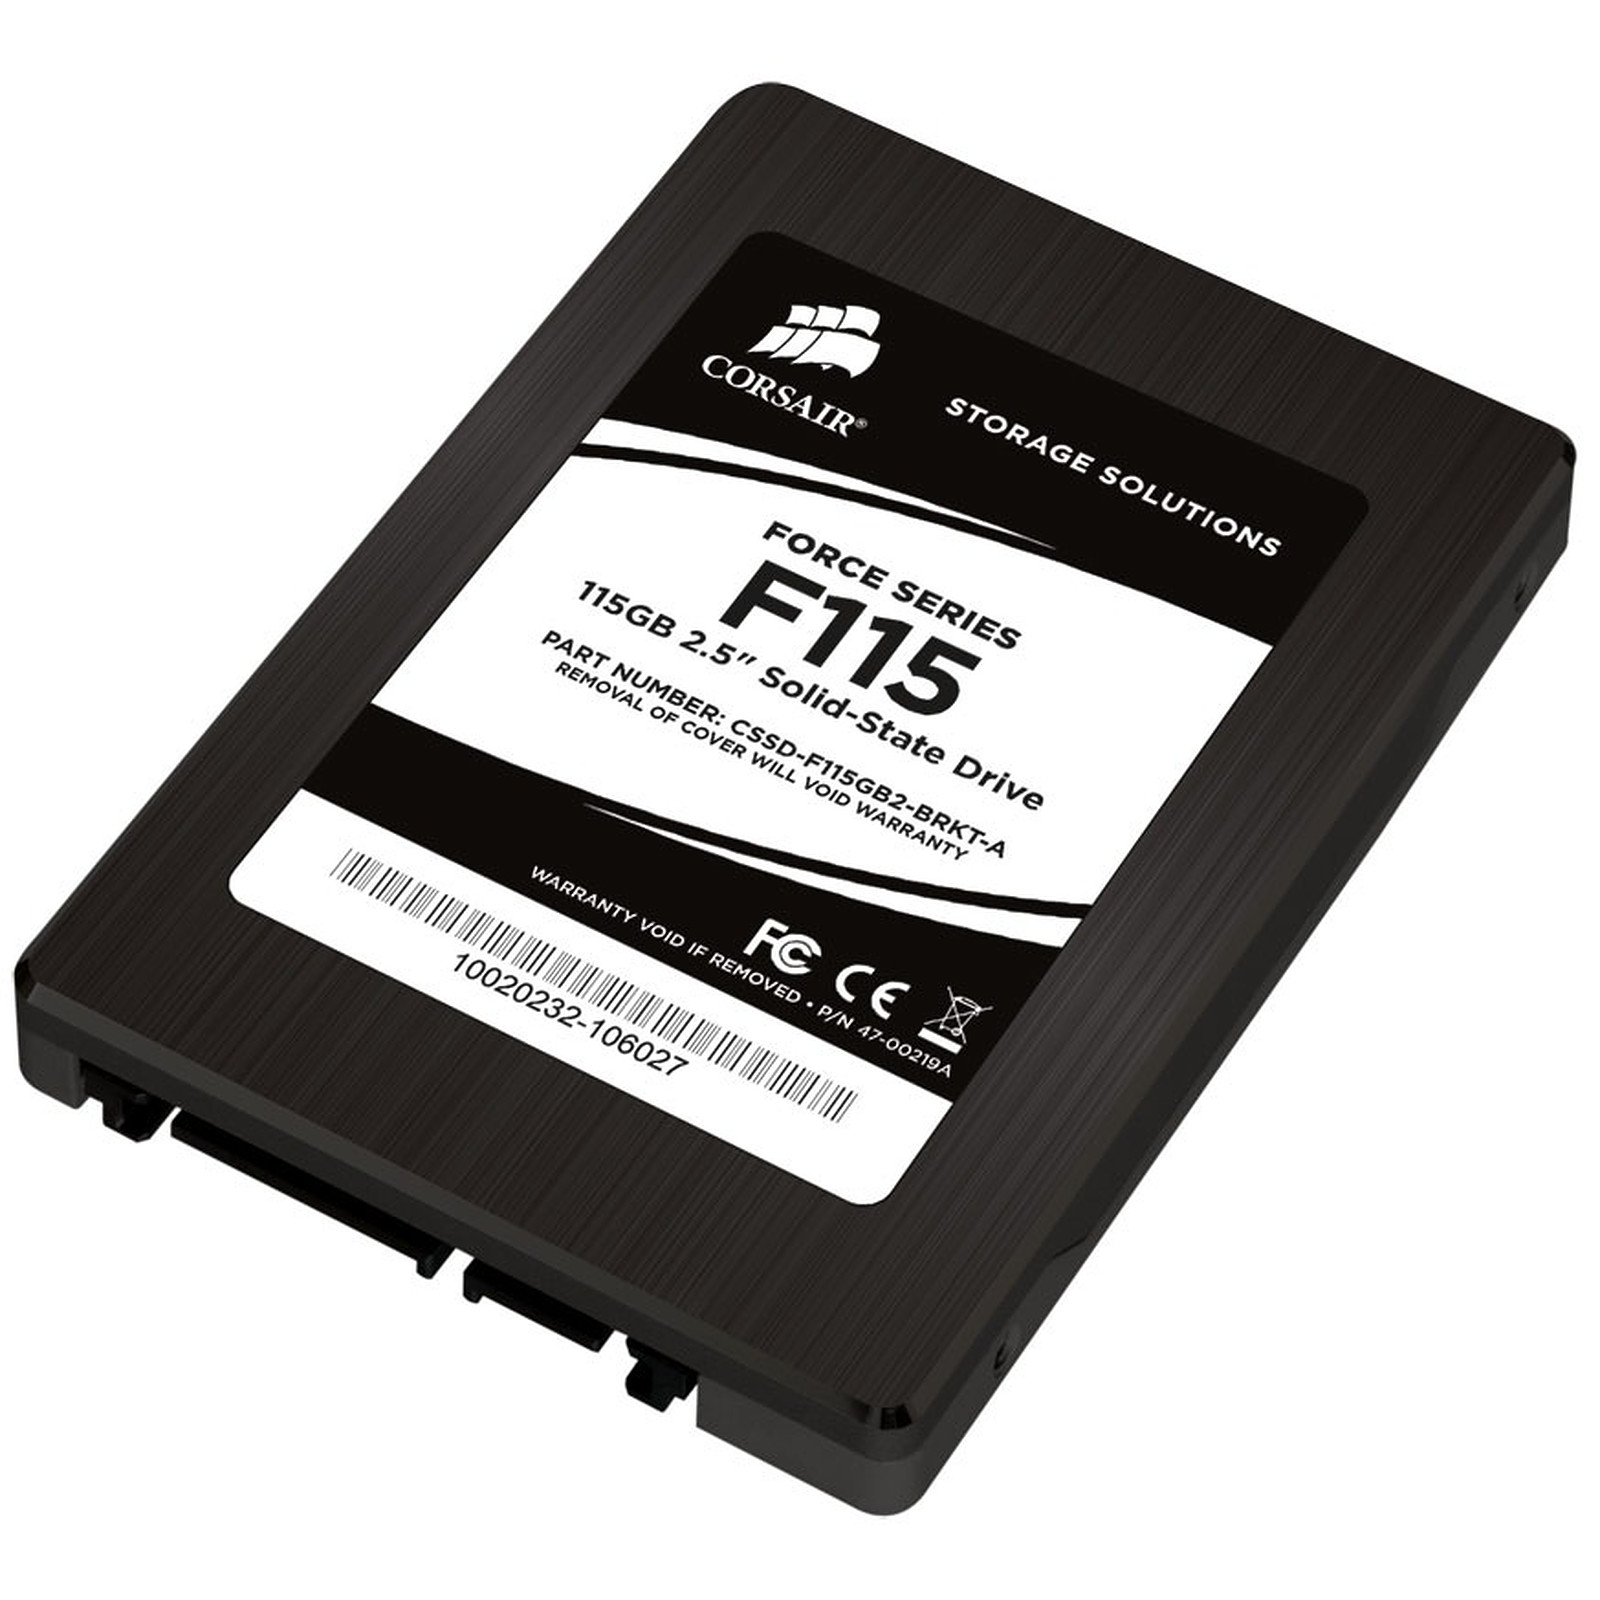 Corsair Force Series F115 SSD 115 Go